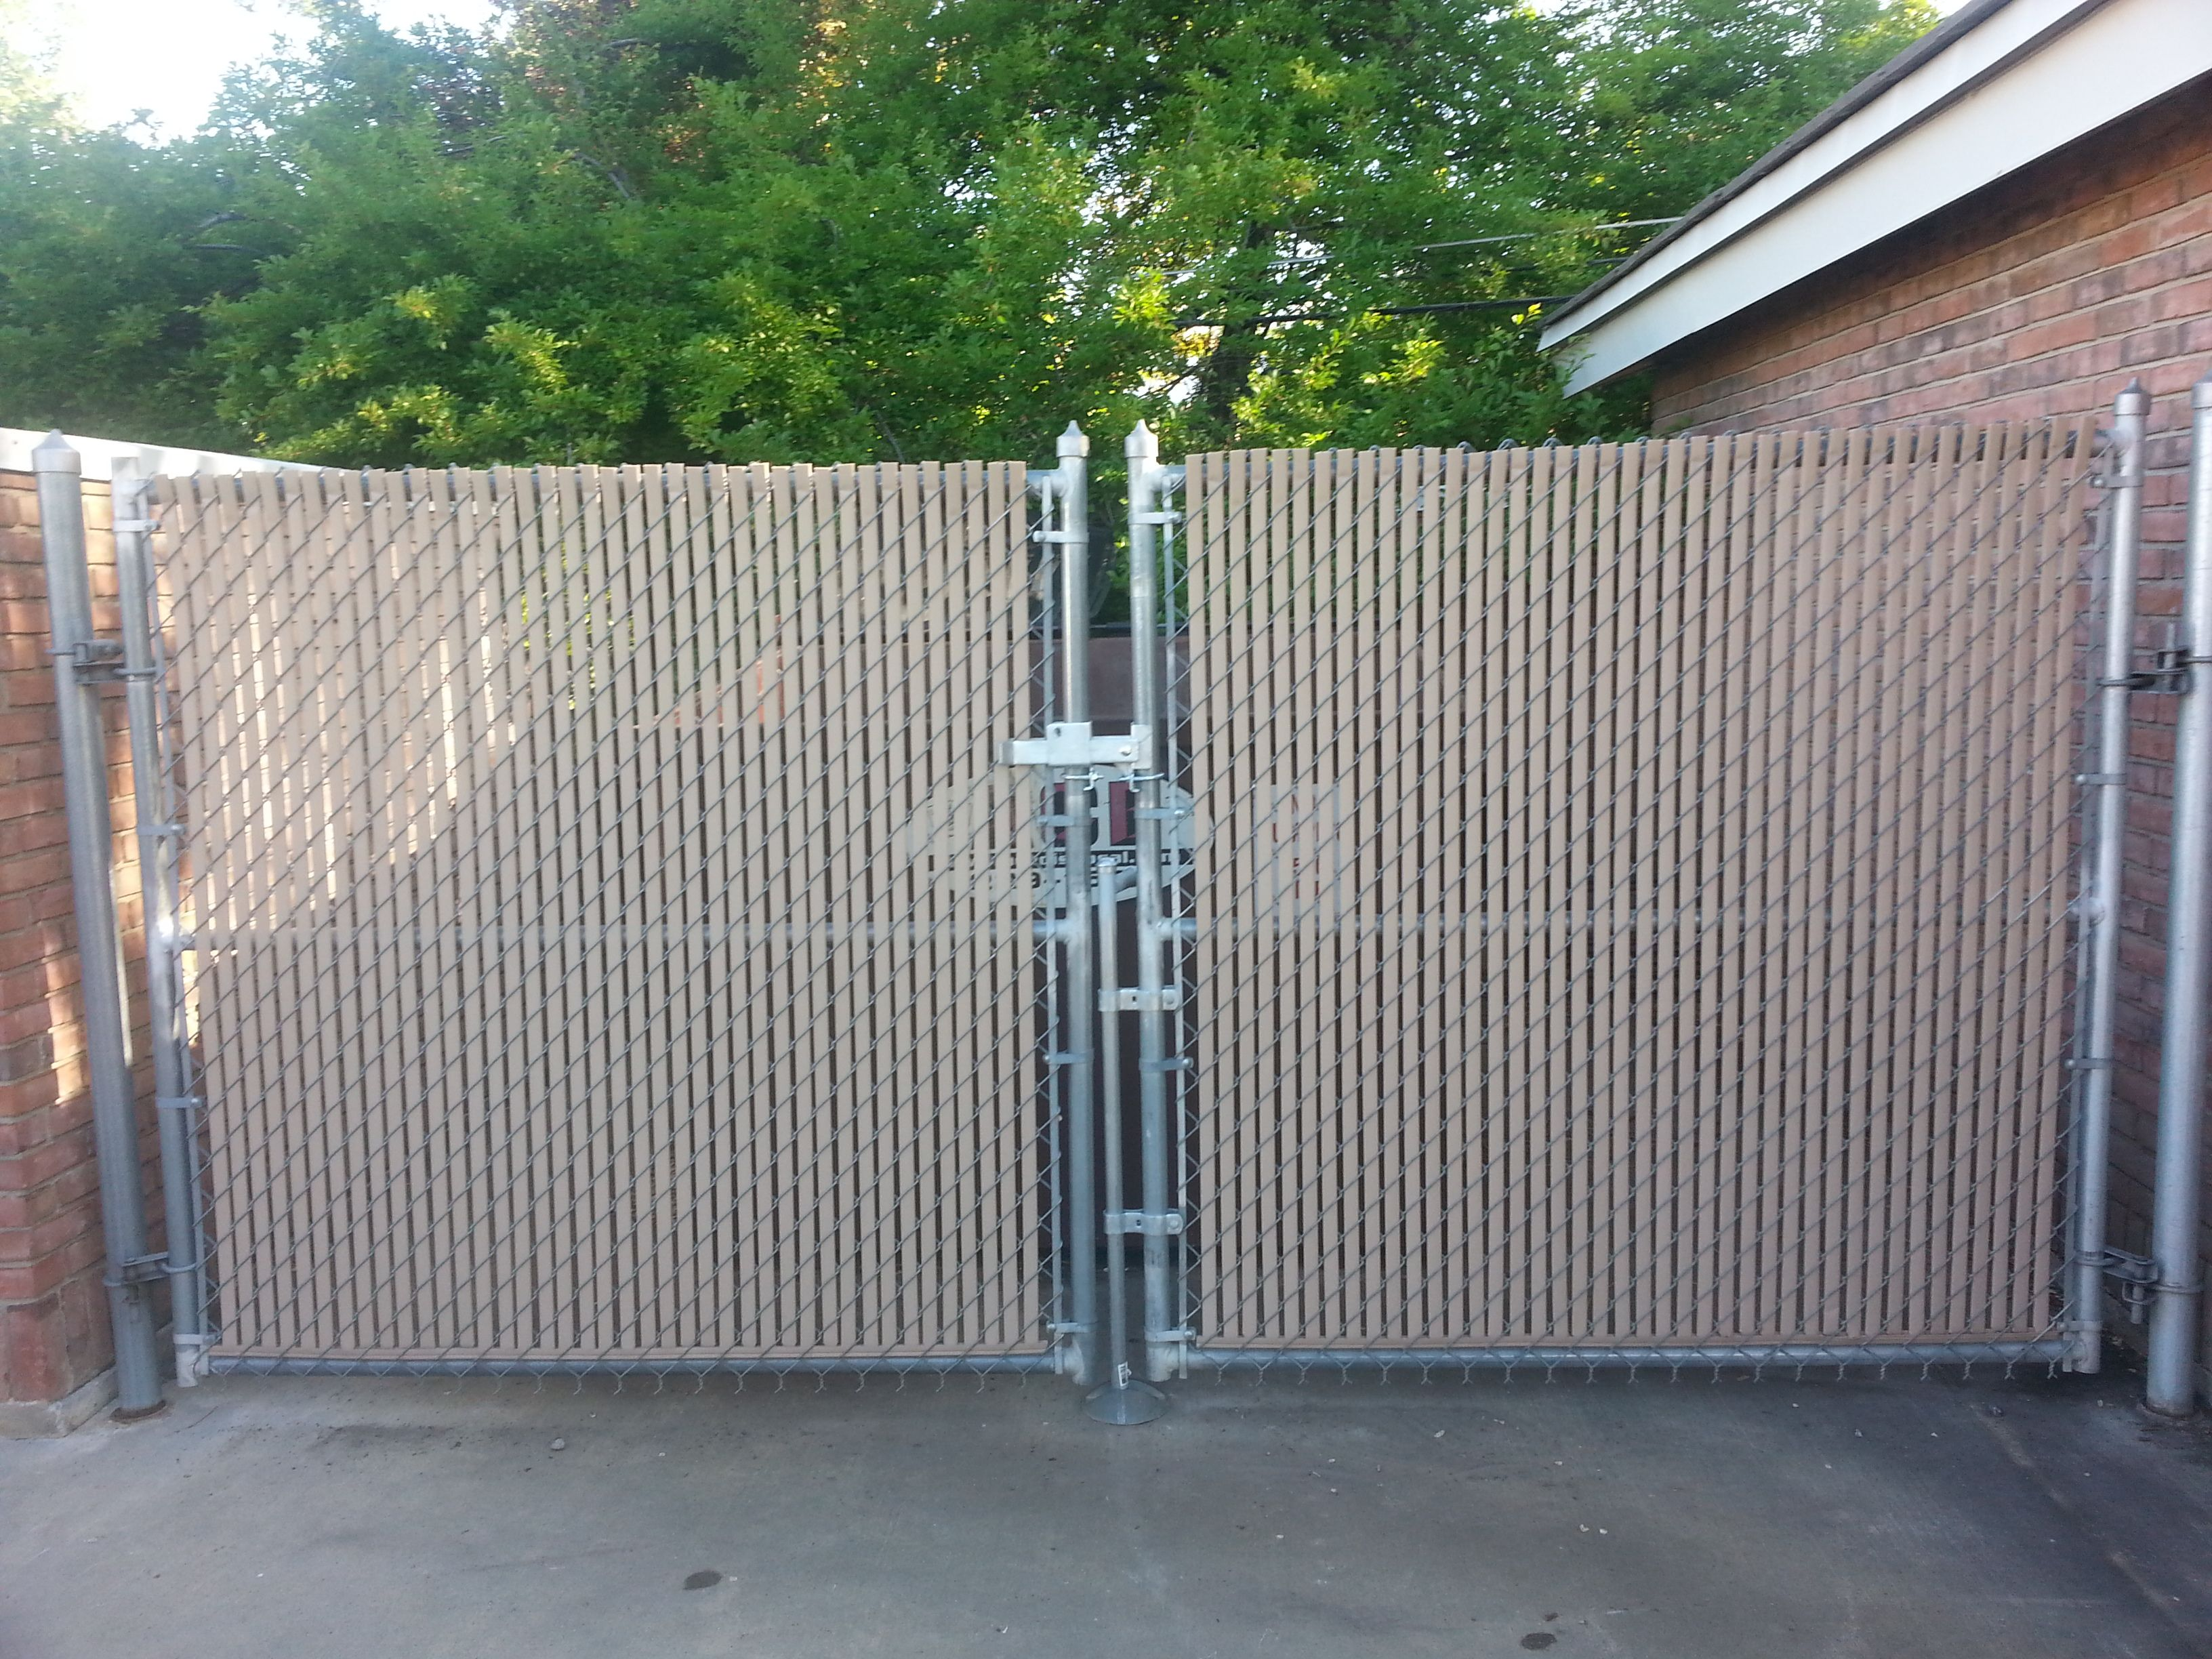 Privacy screen for chain link fences - Walk Gate Chainlink Galvanized Wire Tan Privacy Slats